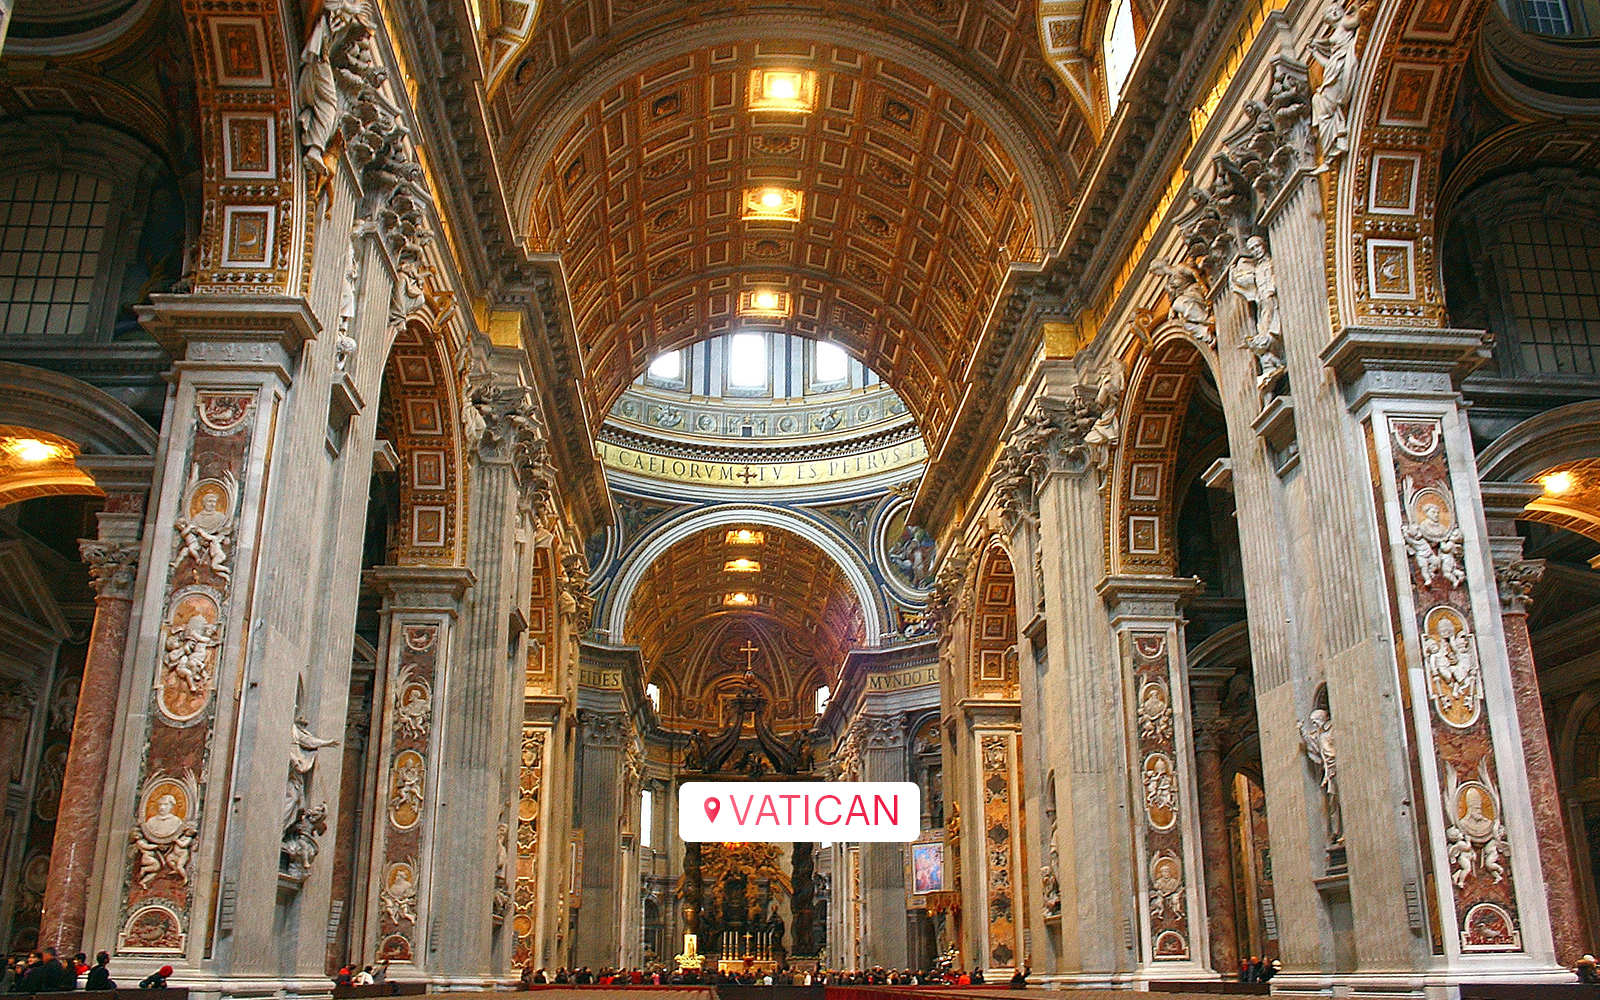 D41bc23a 6b7f 4be7 8f80 73467333fa6f 6732 rome skip the line vatican museum and sistine chapel tickets 03